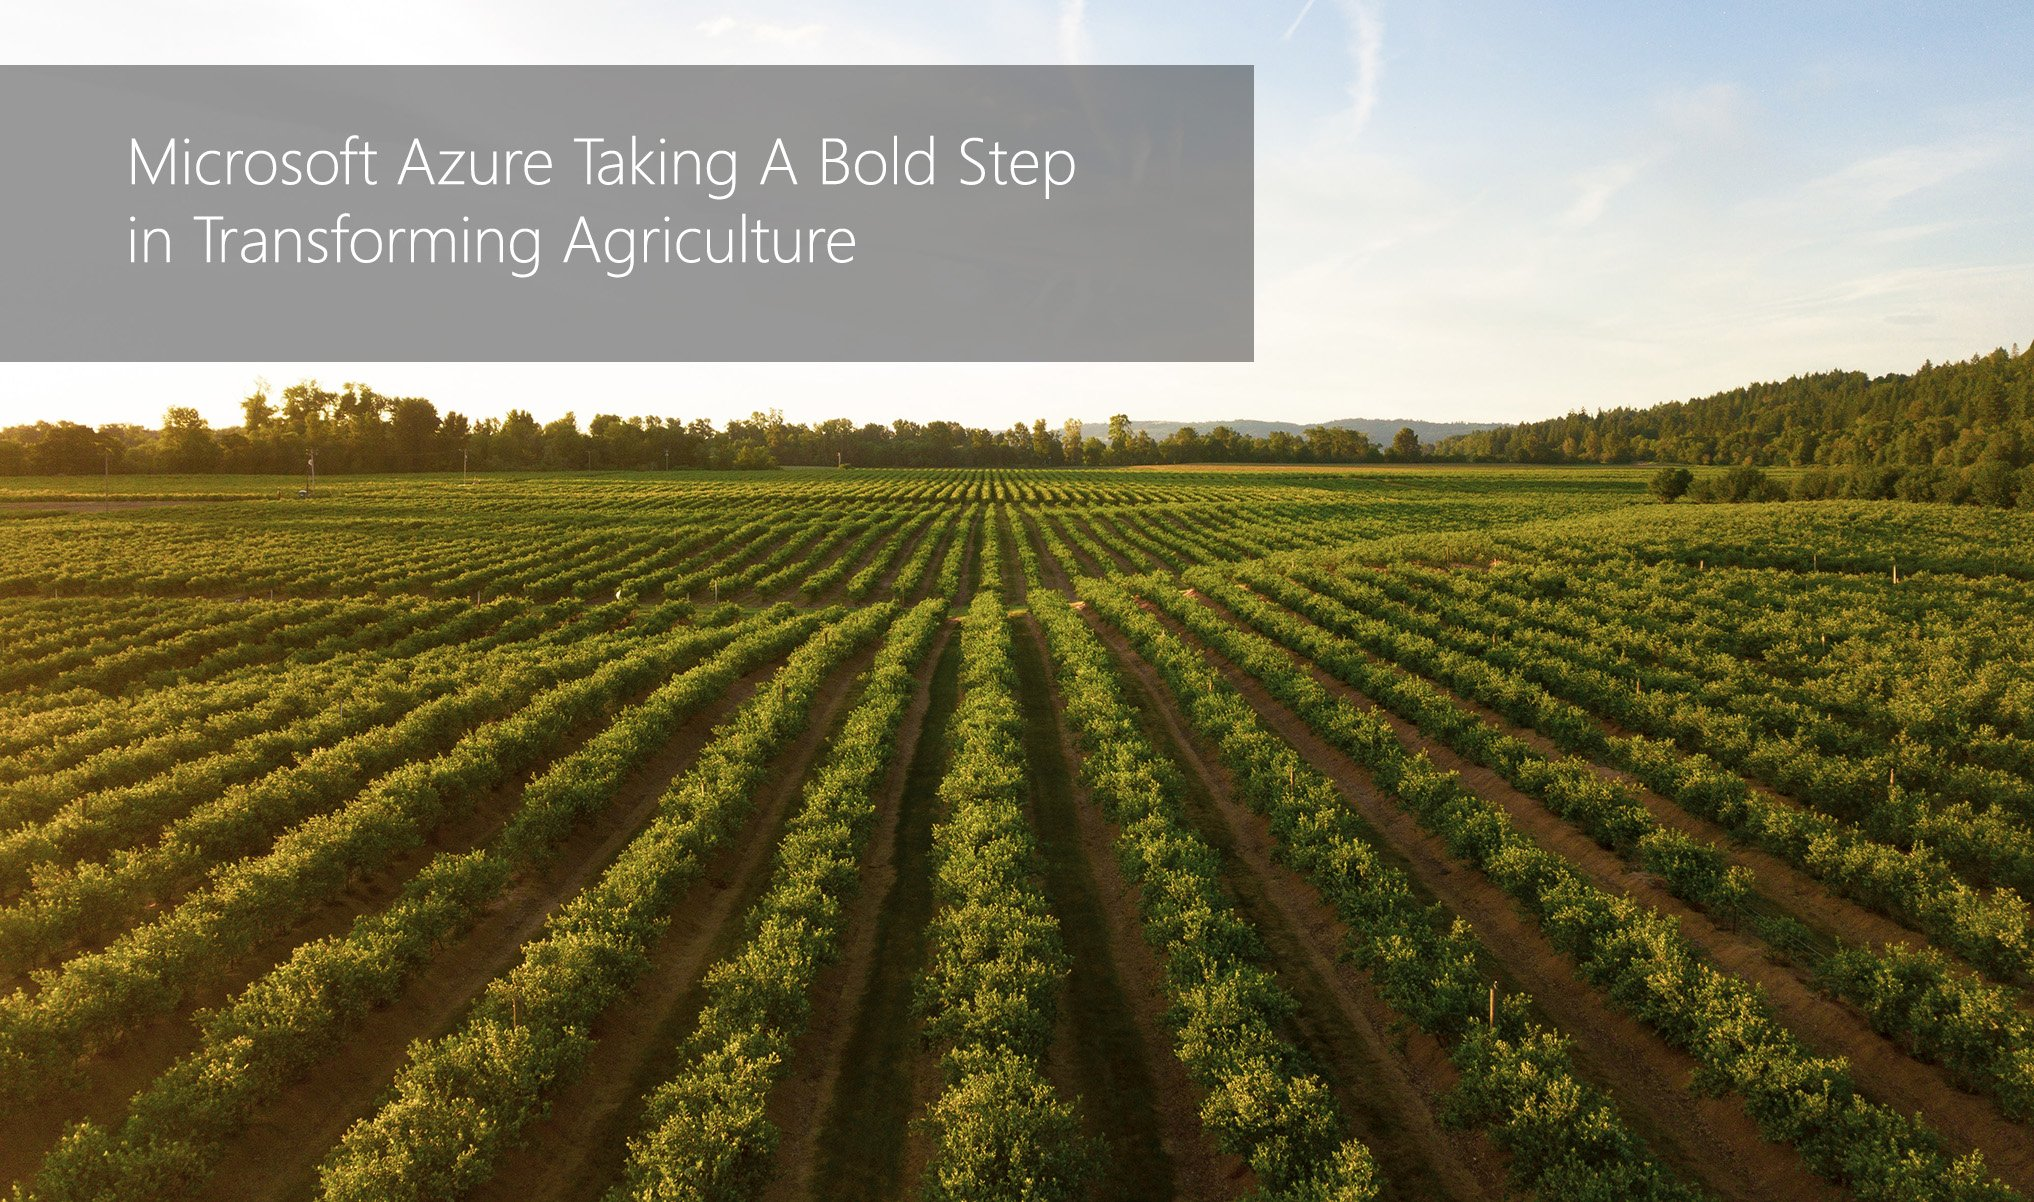 tmc-blog-microsoft-azure-taking-a-bold-step-in-transforming-agriculture